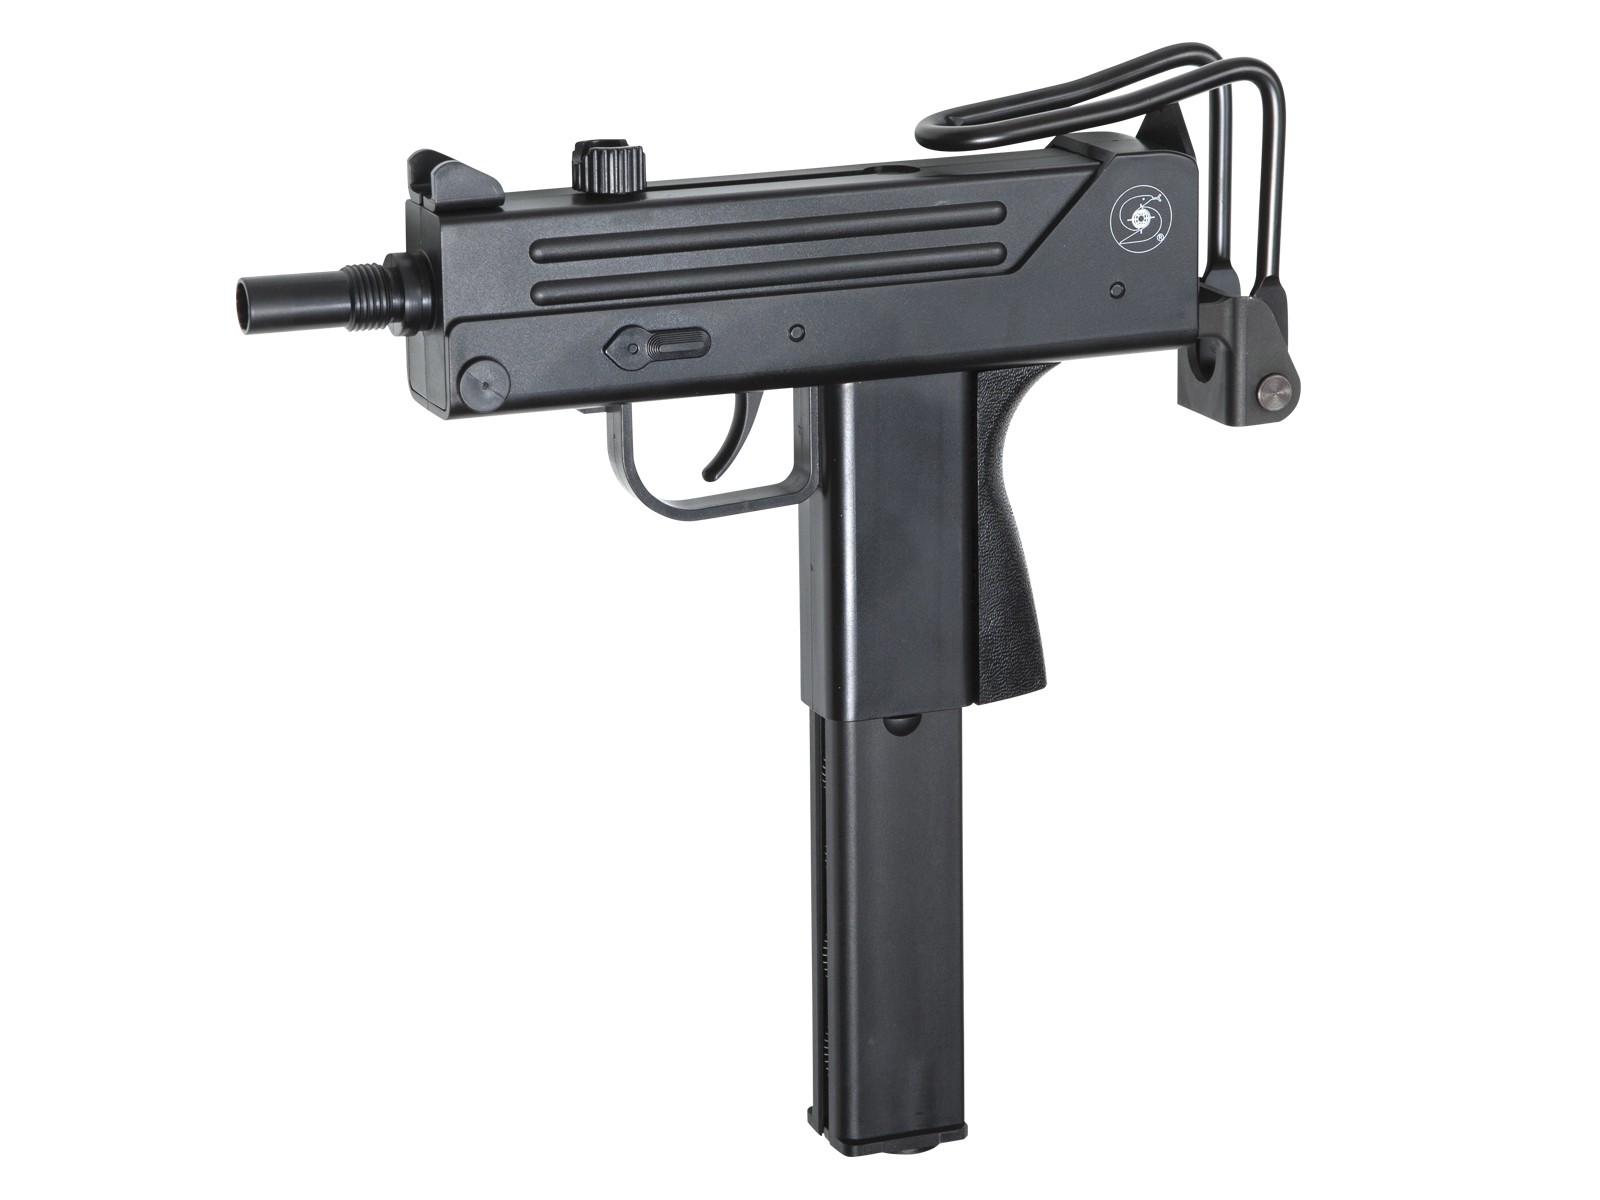 ASG Cobray Ingram M11 CO2 BB Submachine Gun 0.177